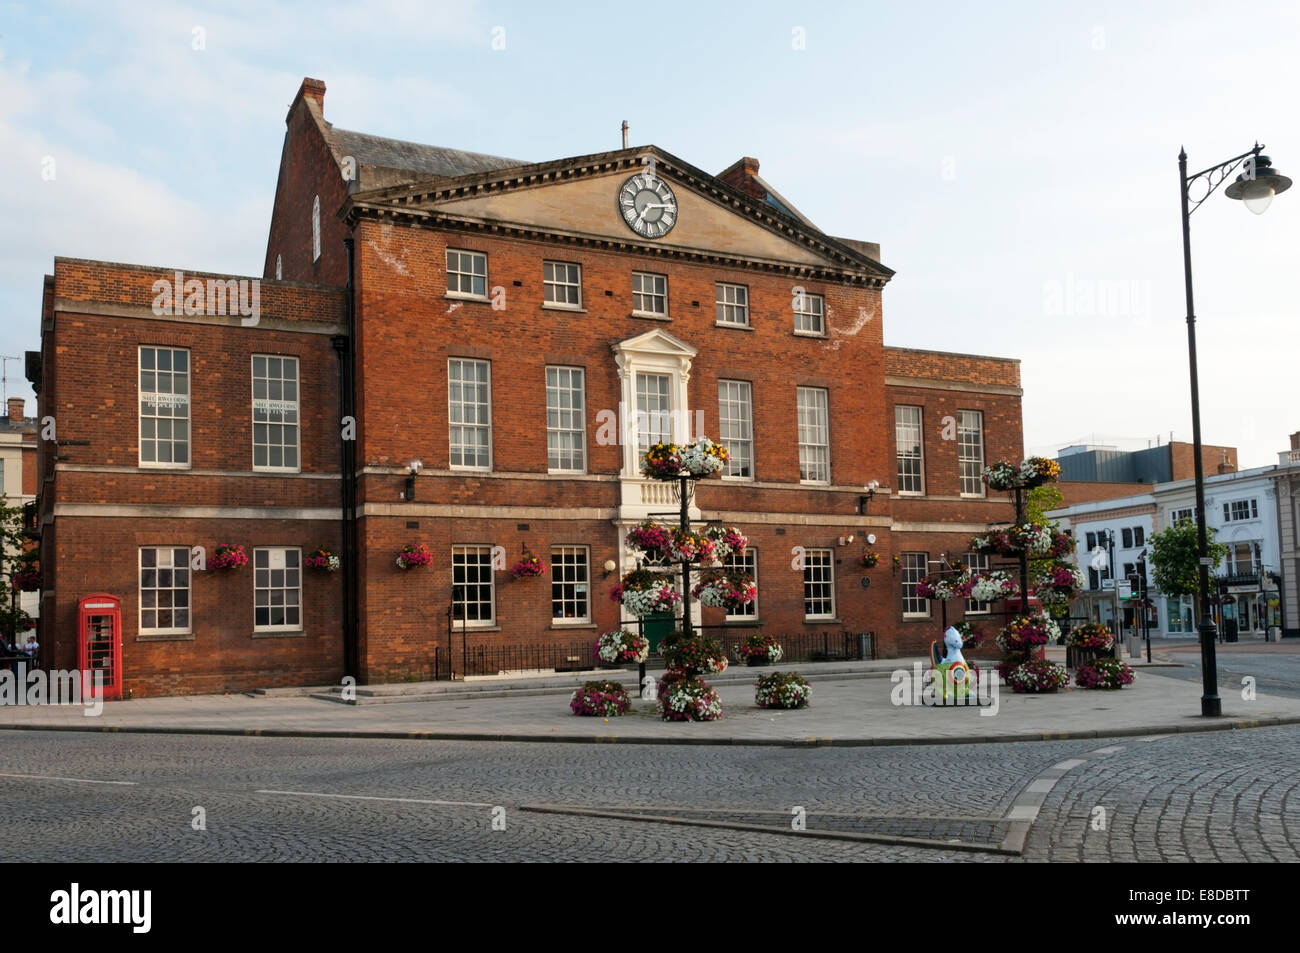 The Market House public house in Taunton town centre, Somerset. - Stock Image